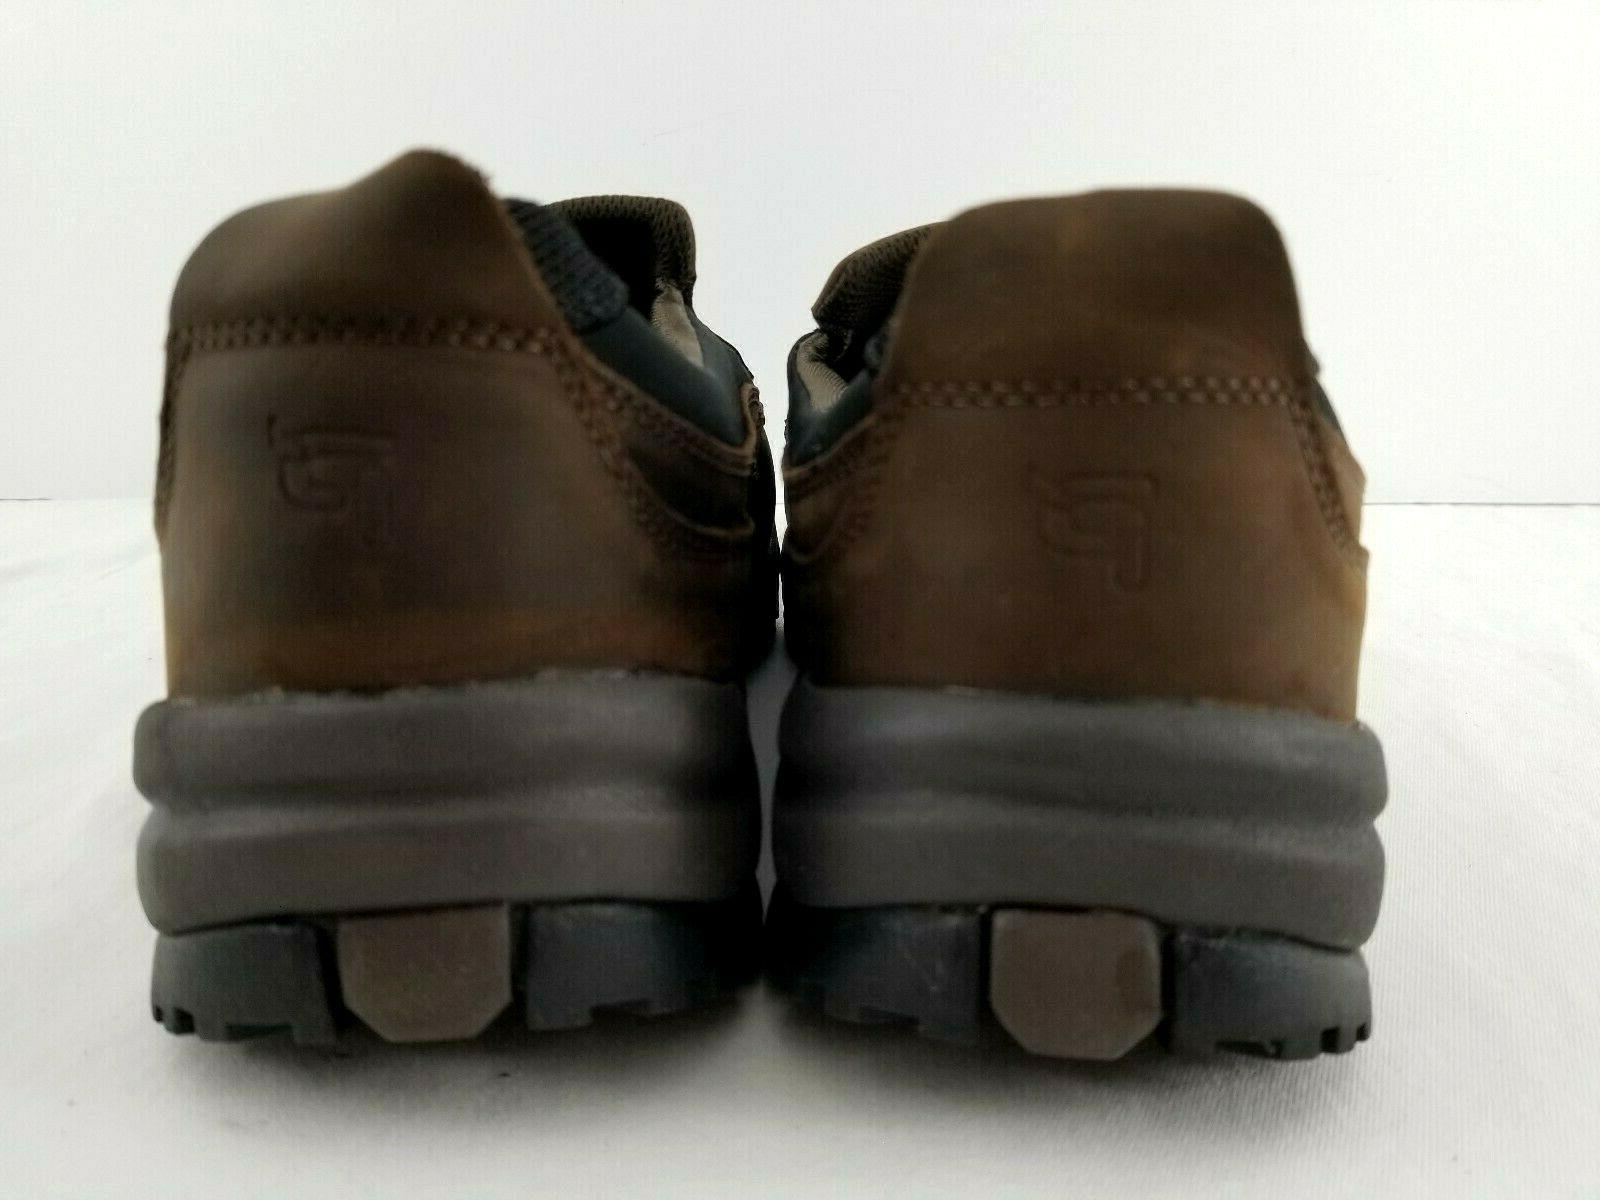 Propet Winter Shoes Boots Thinsulate 11 M3786